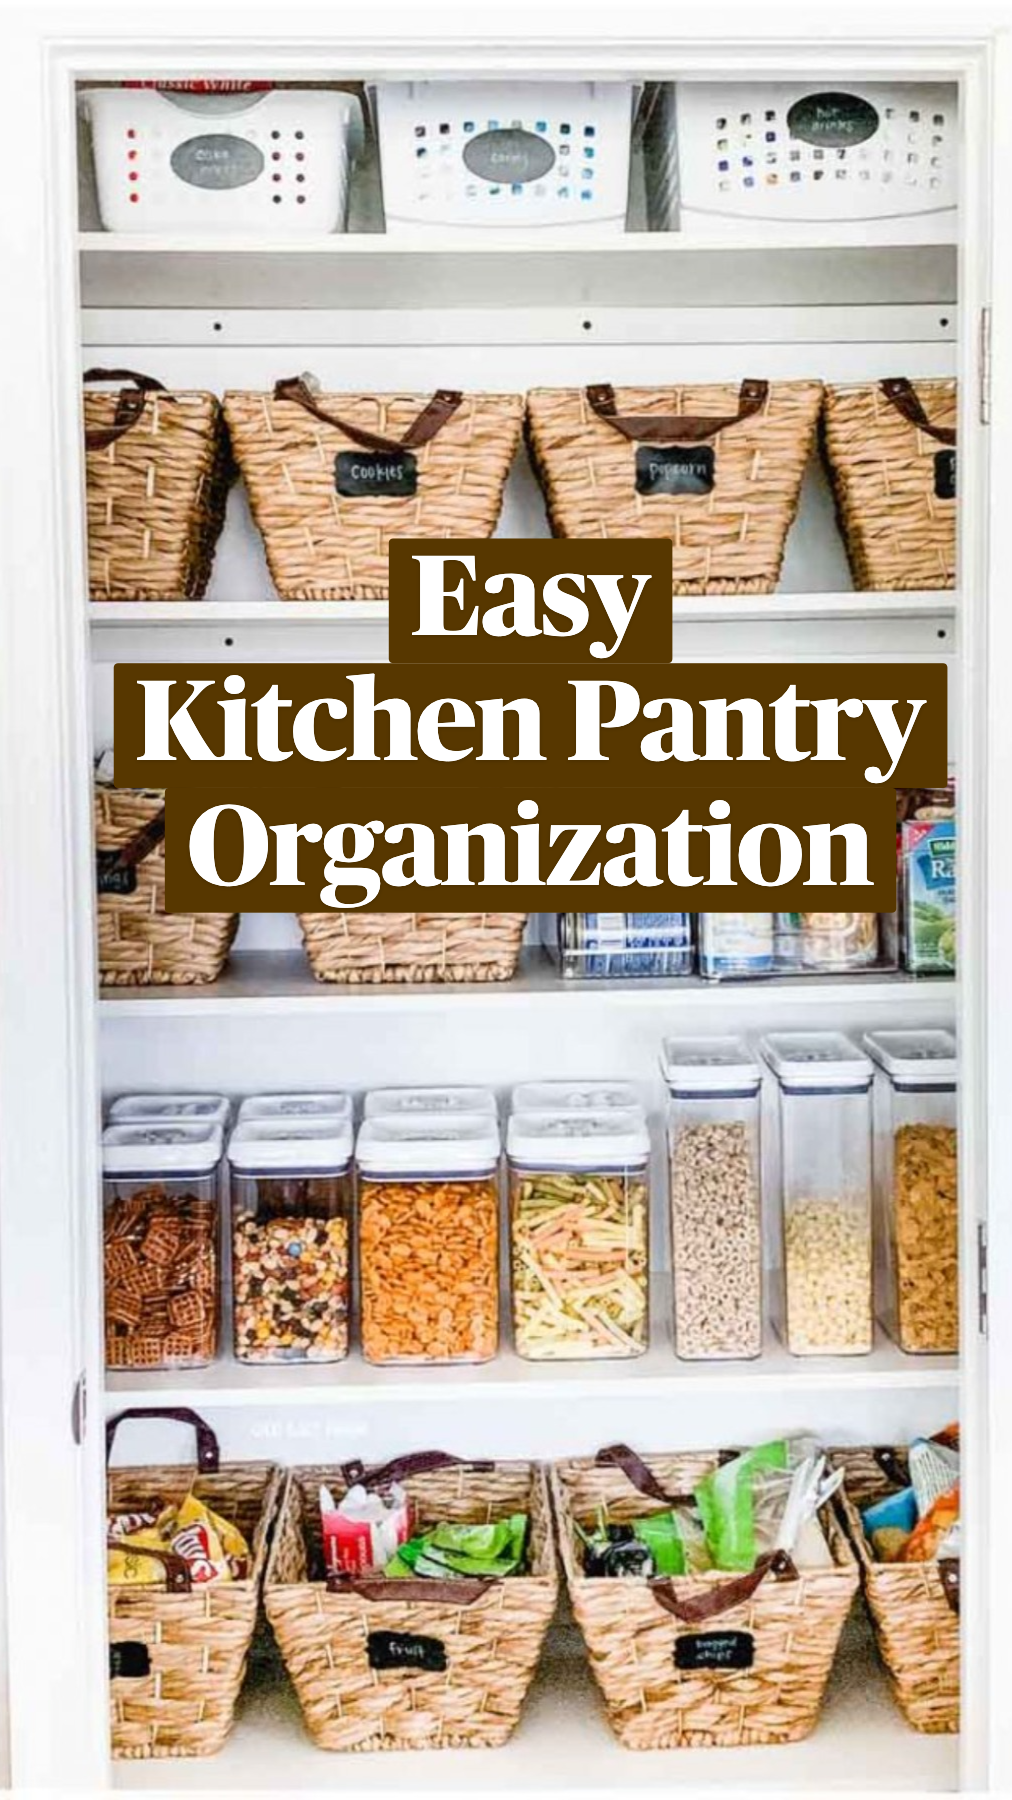 Laundry Room to Walk-in Pantry Reveal